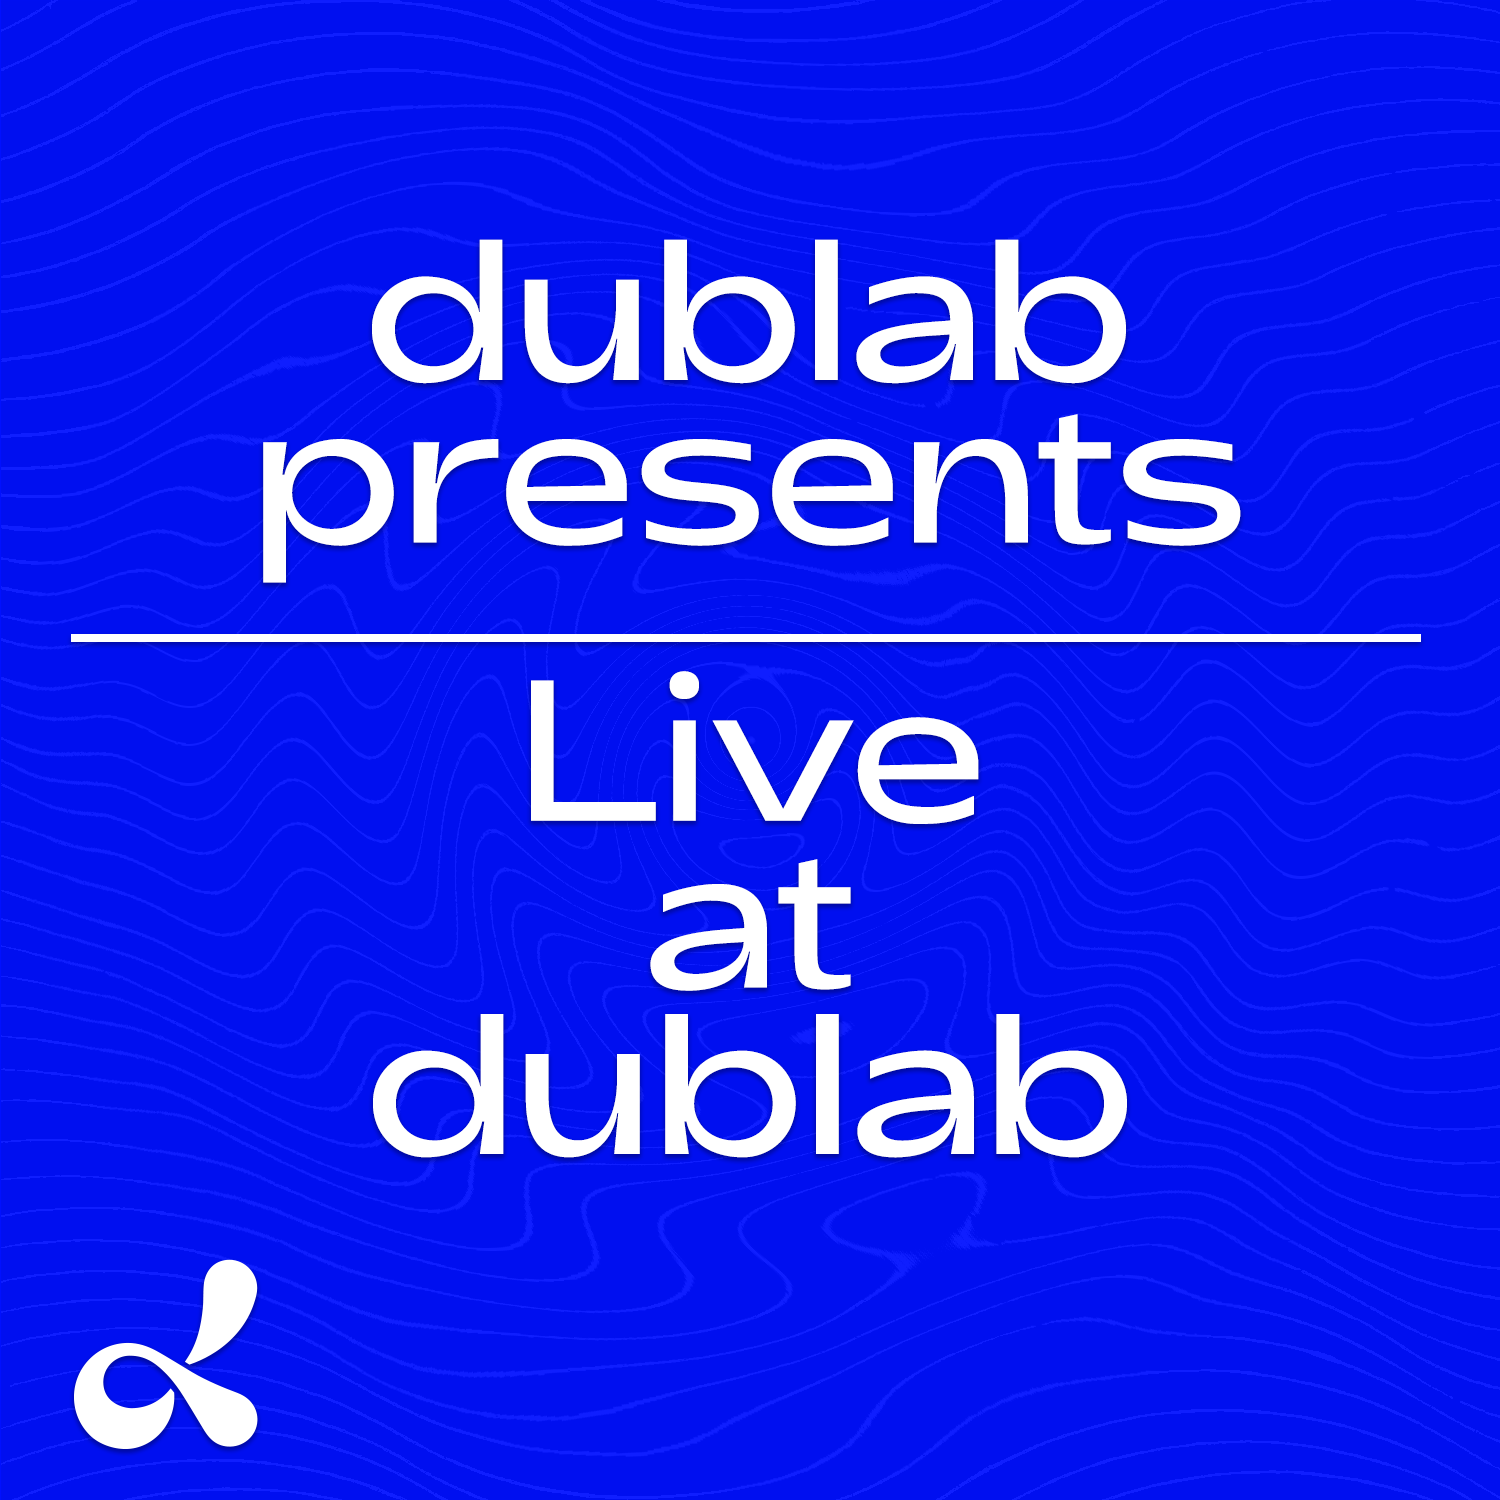 Dublab 20live 20at 20dublab radio v2